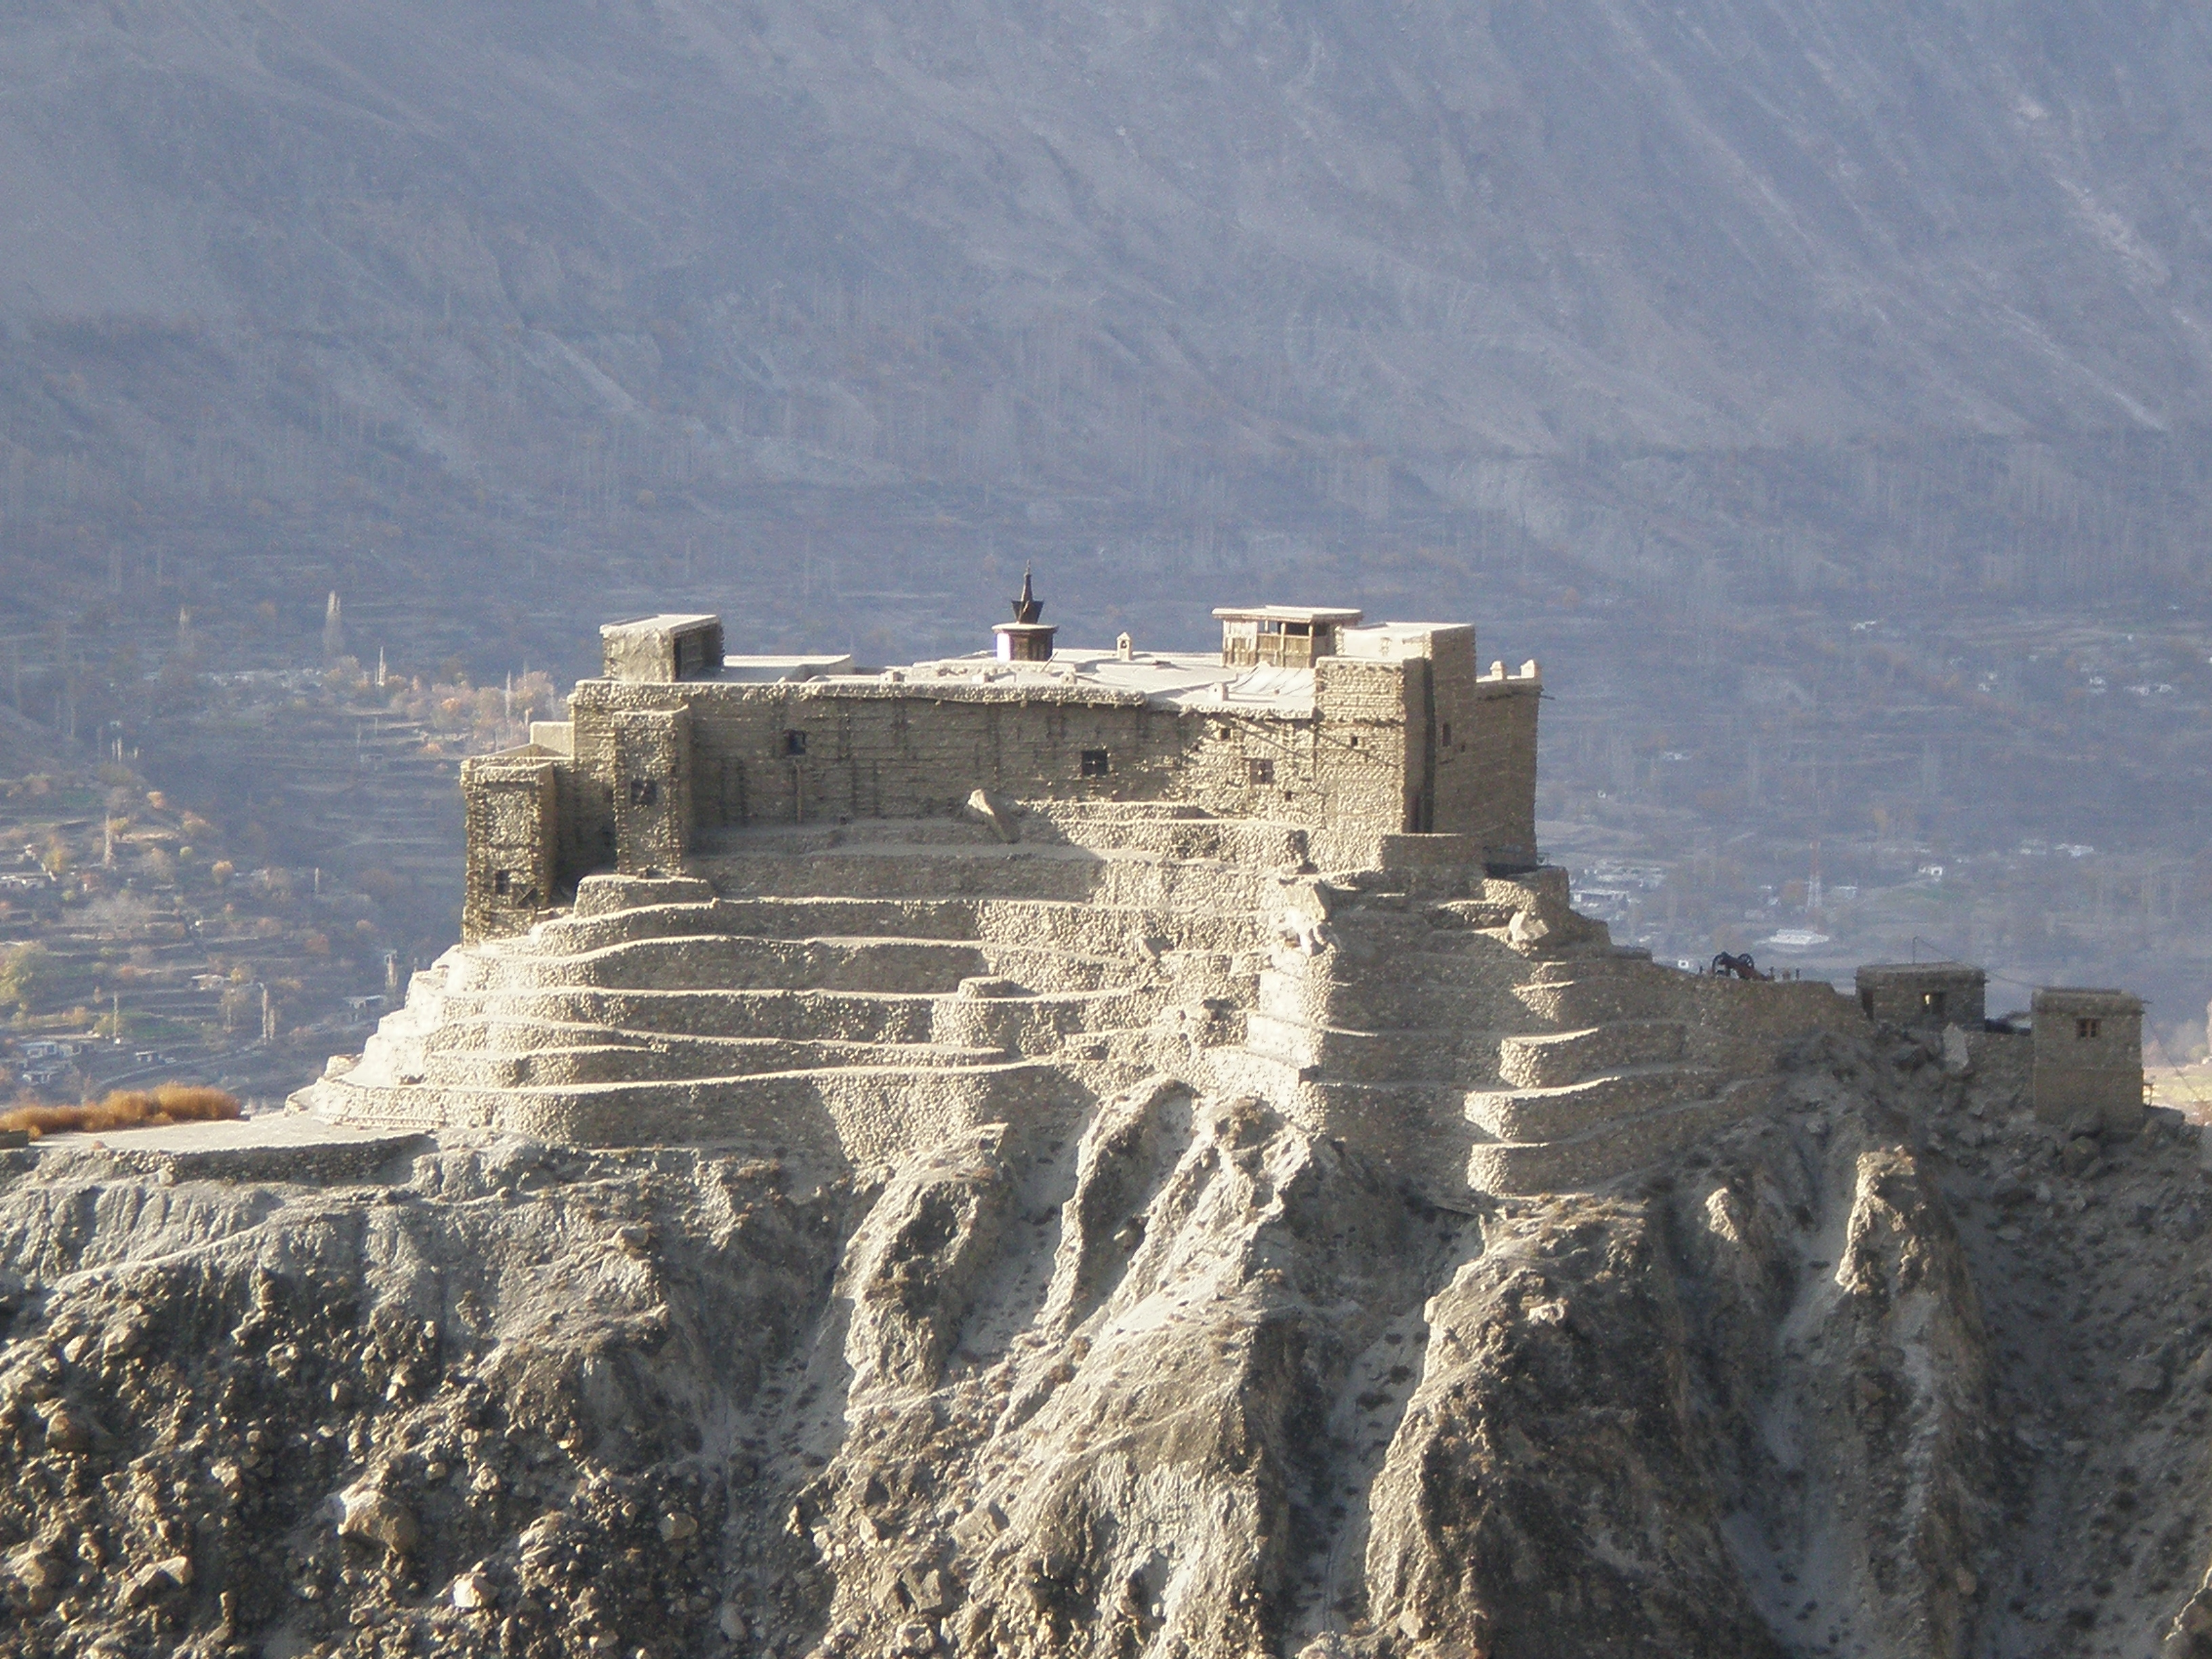 https://upload.wikimedia.org/wikipedia/commons/2/2f/Baltit_Fort_East_Elevation.JPG